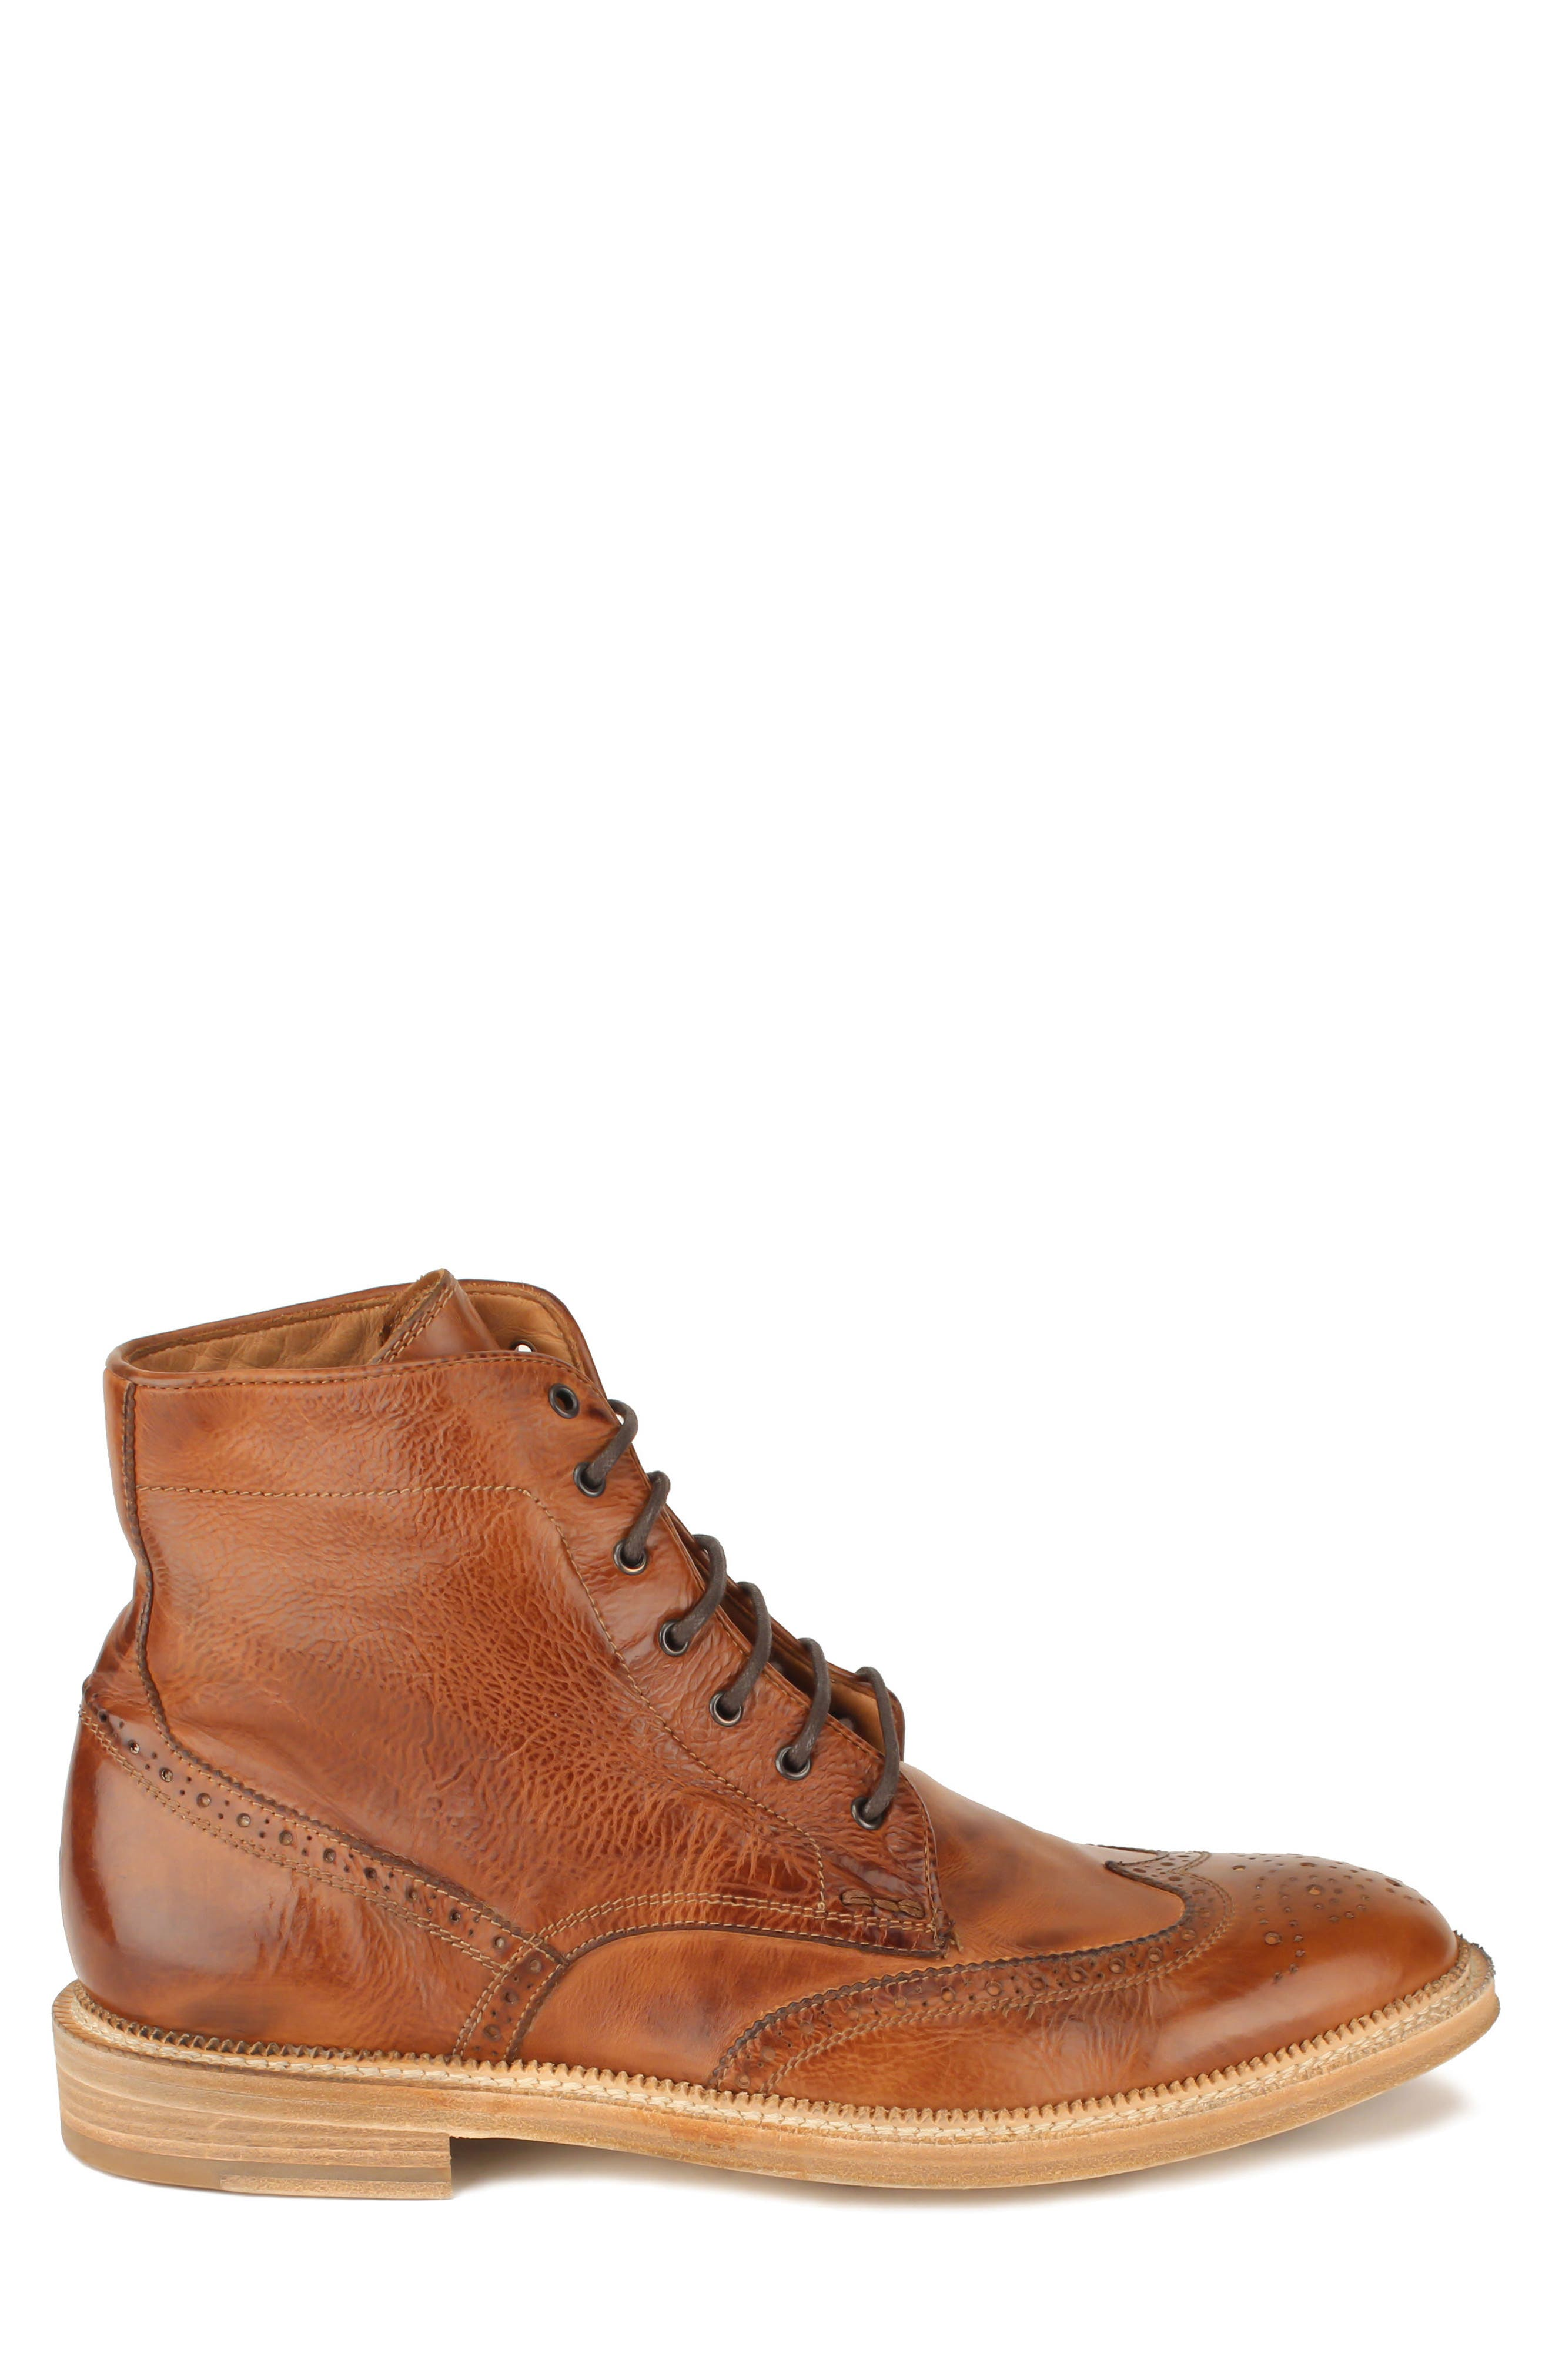 Alternate Image 3  - Gordon Rush Max Wingtip Boot (Men)